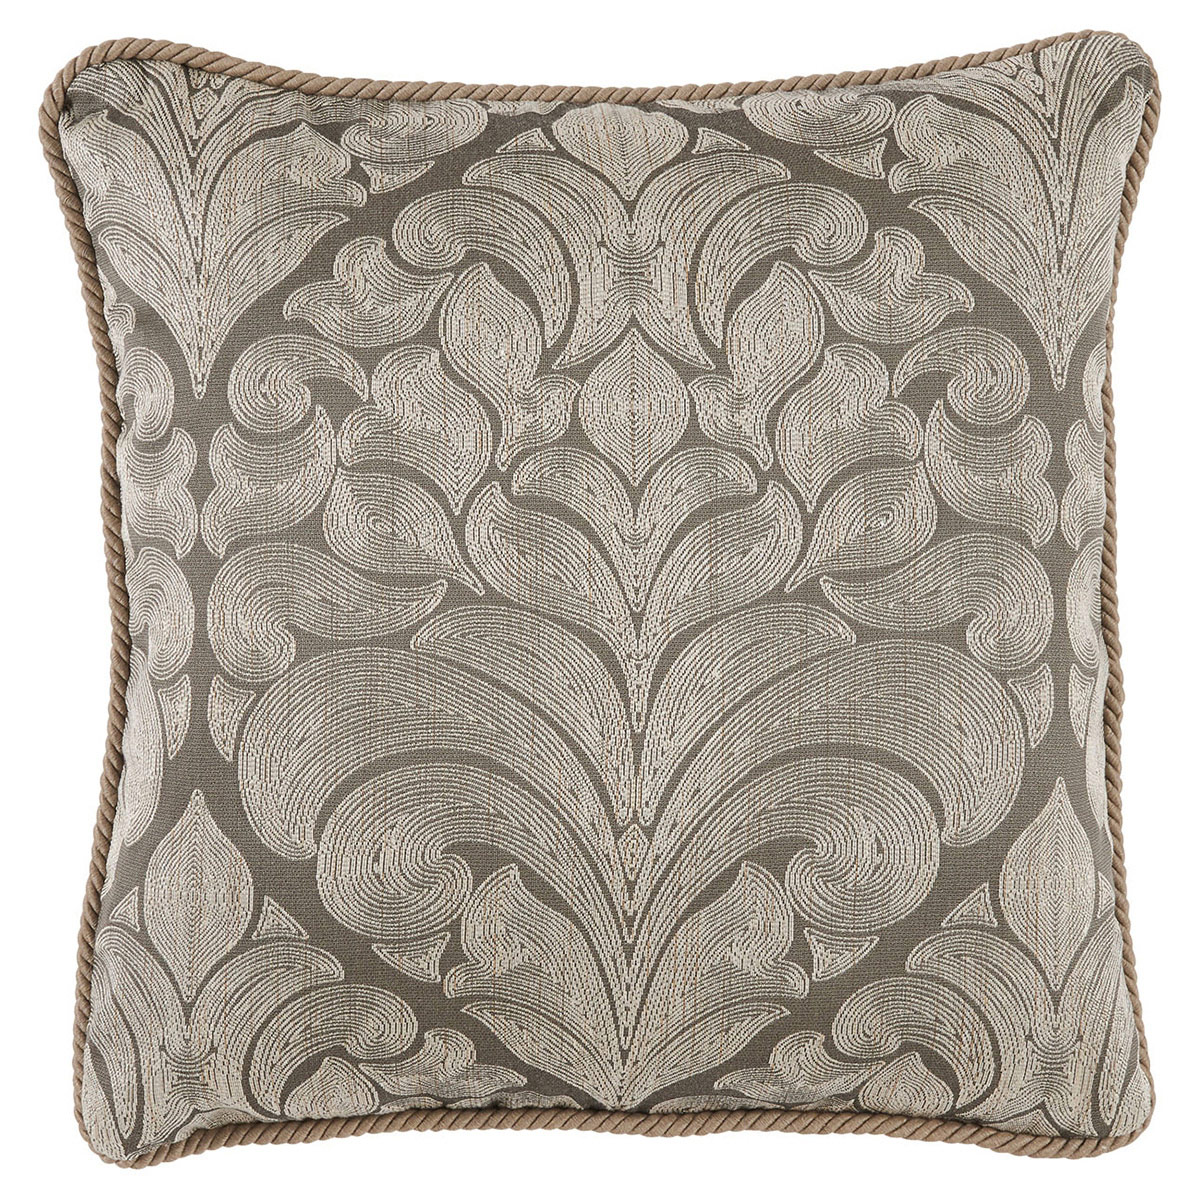 Pepin French Woven Grey Medallion Pillow - 22x22